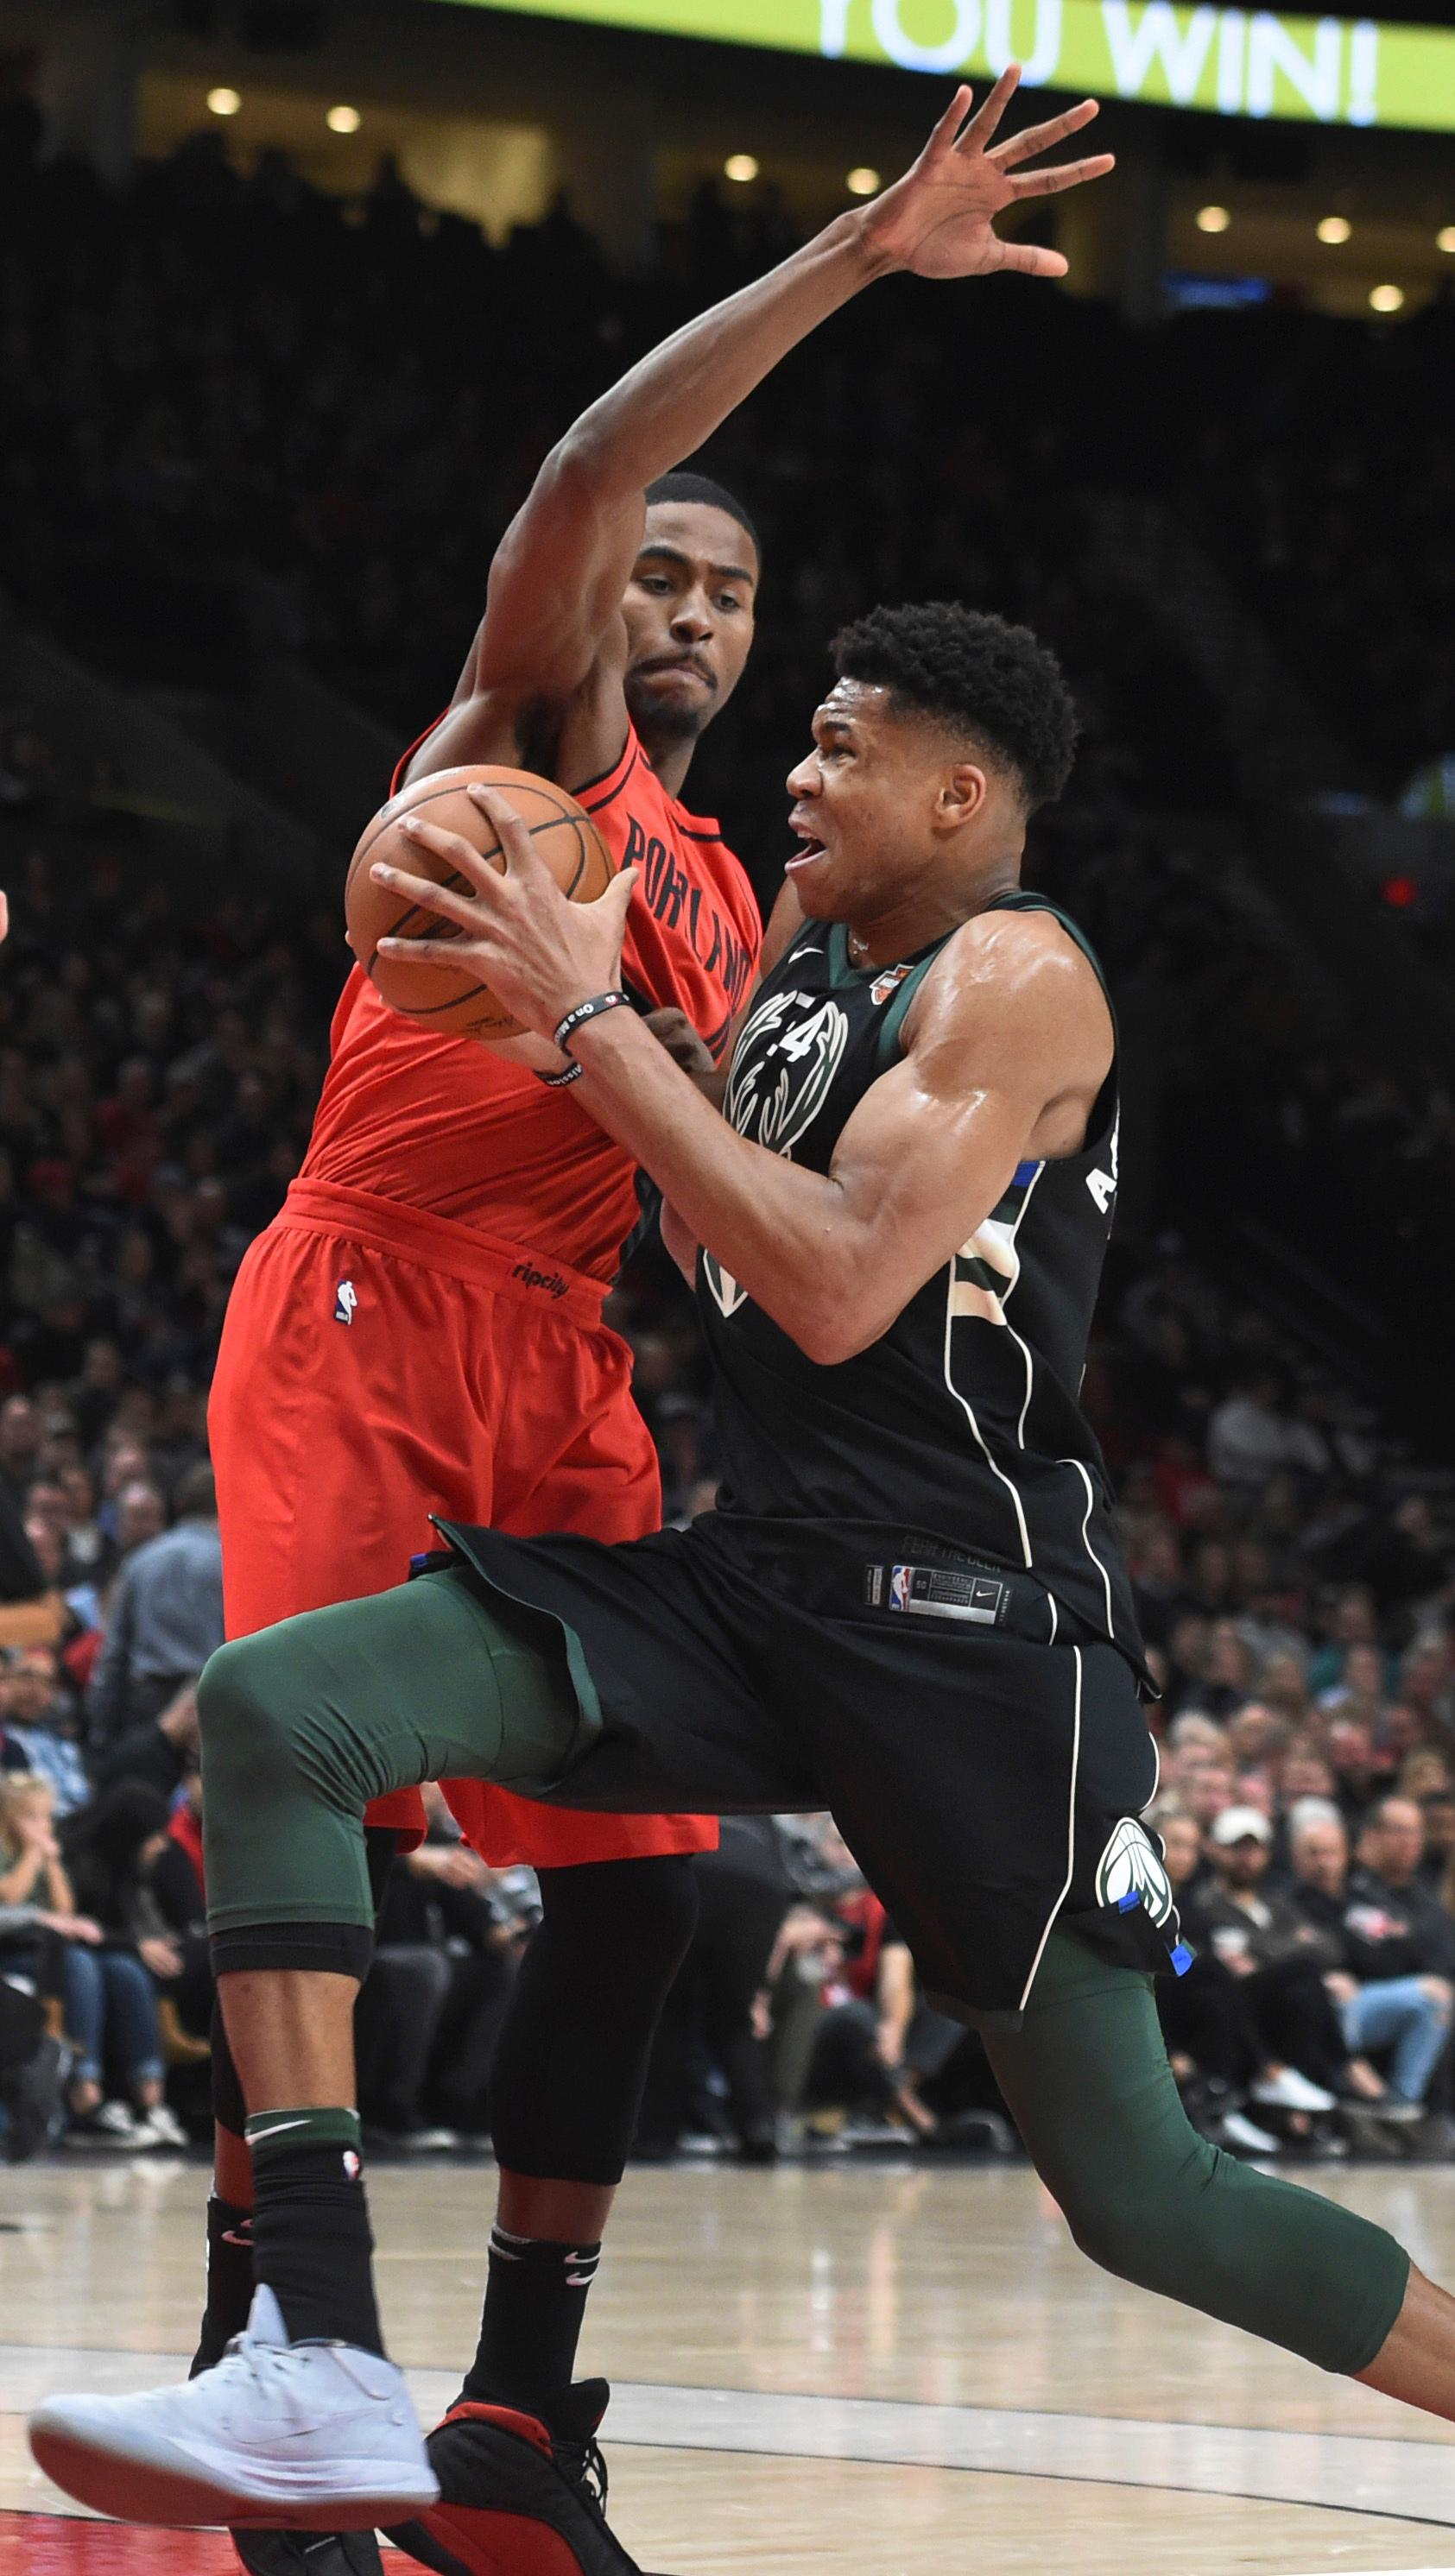 Milwaukee Bucks forward Giannis Antetokounmpo drives to the basket on Portland Trail Blazers forward Maurice Harkless during the first quarter of an NBA basketball game in Portland, Ore., Thursday, Nov. 30, 2017. (AP Photo/Steve Dykes)